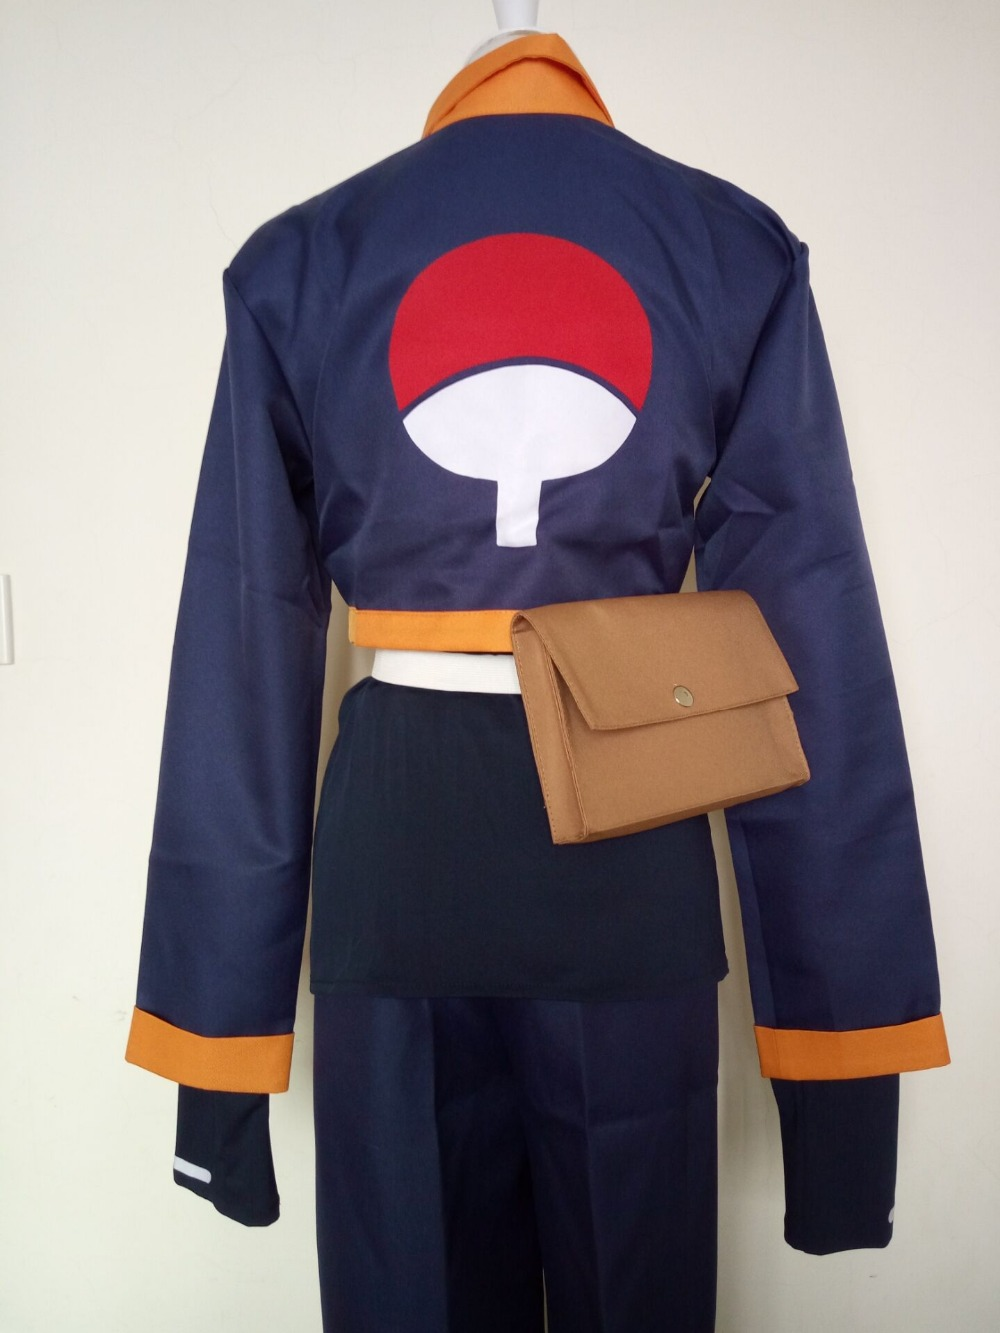 Japan Anime Naruto Obito Uchiha Unisex Cosplay Costume